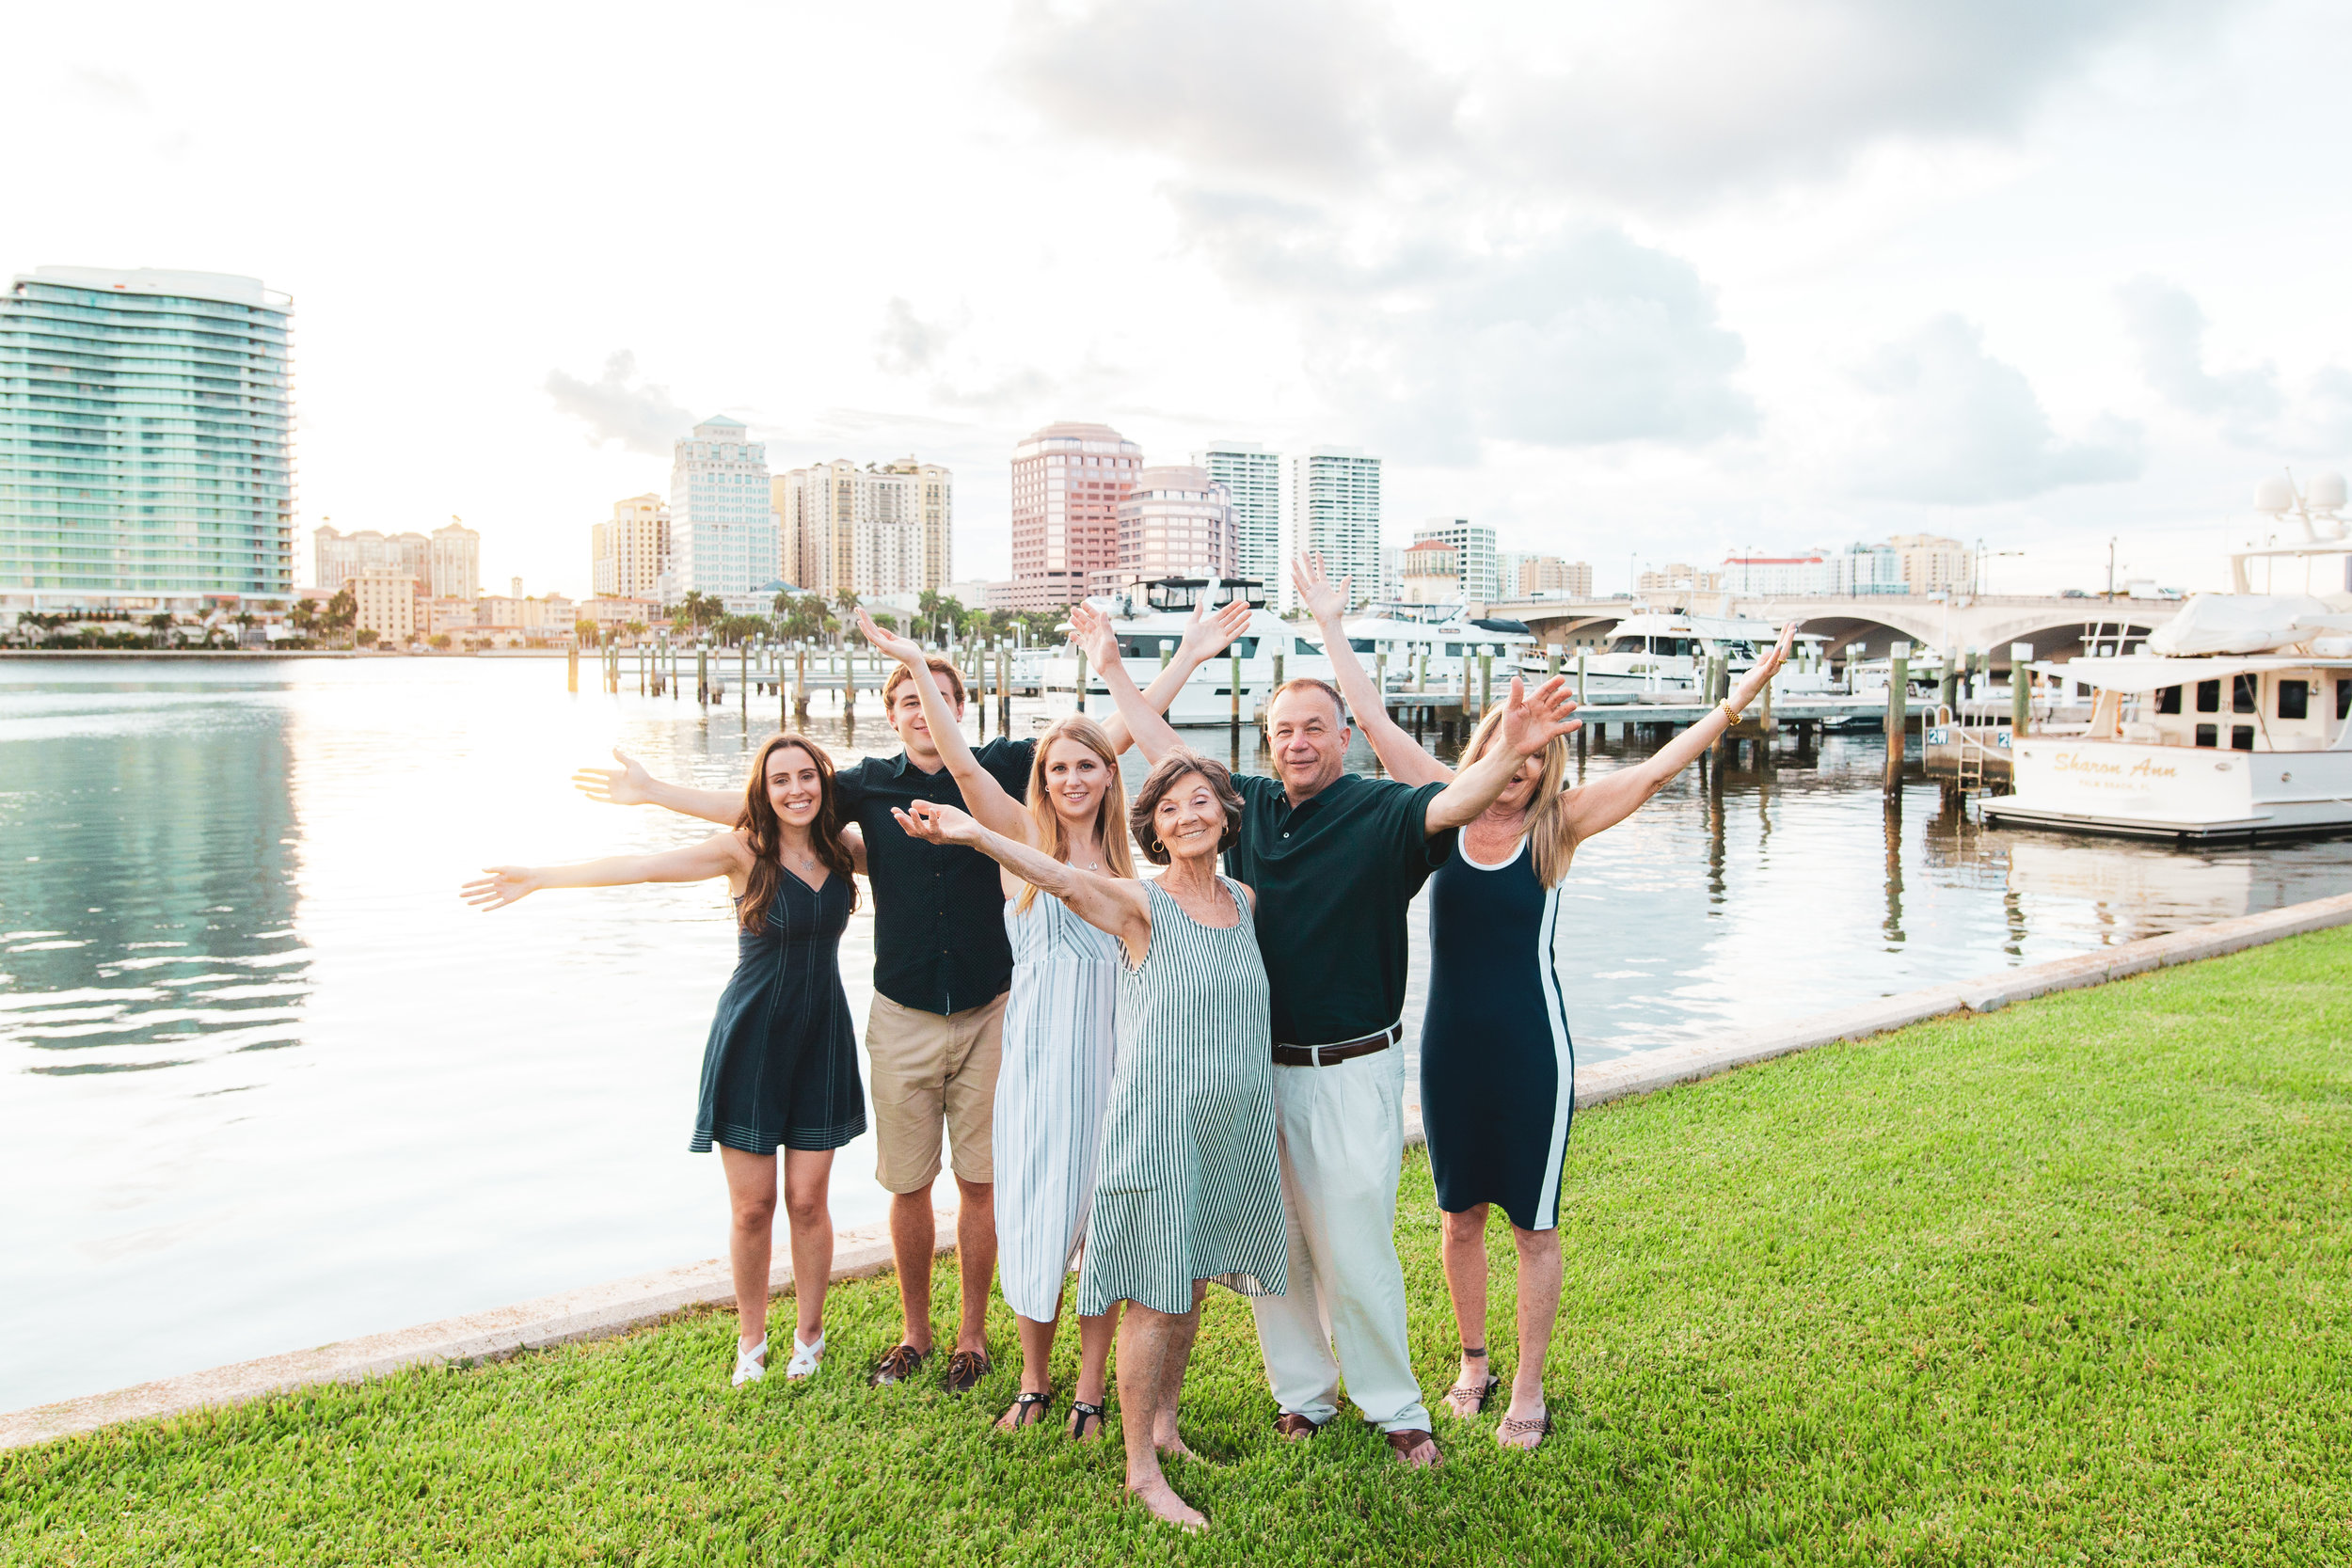 south florida palm beach family vacation kelilina photography 20190821192410-1.jpg